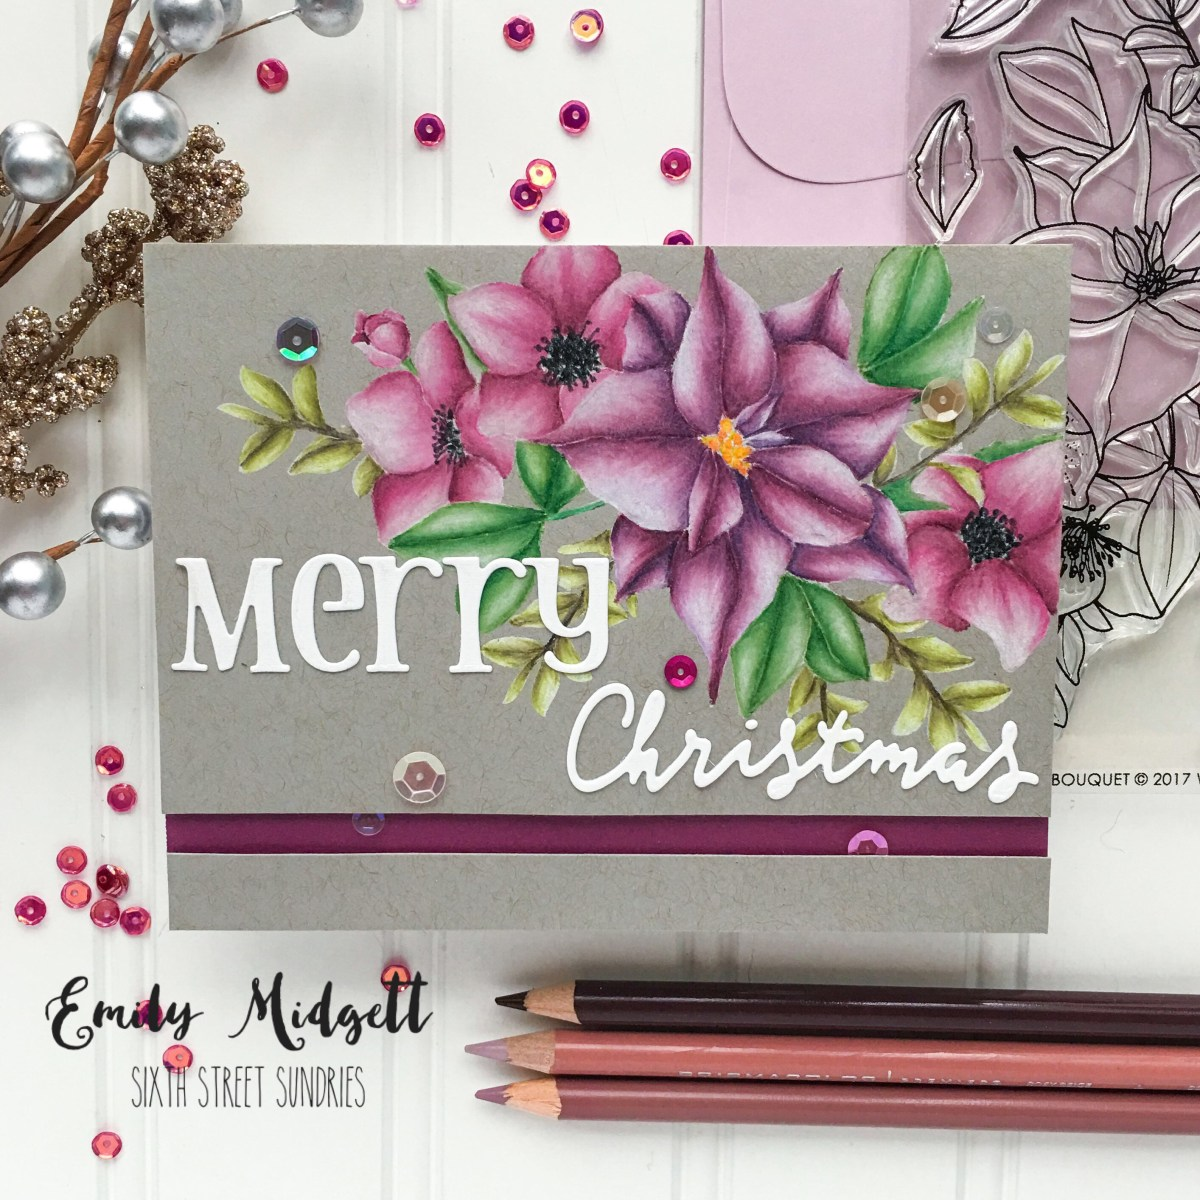 Merry Christmas in flowers and pencils